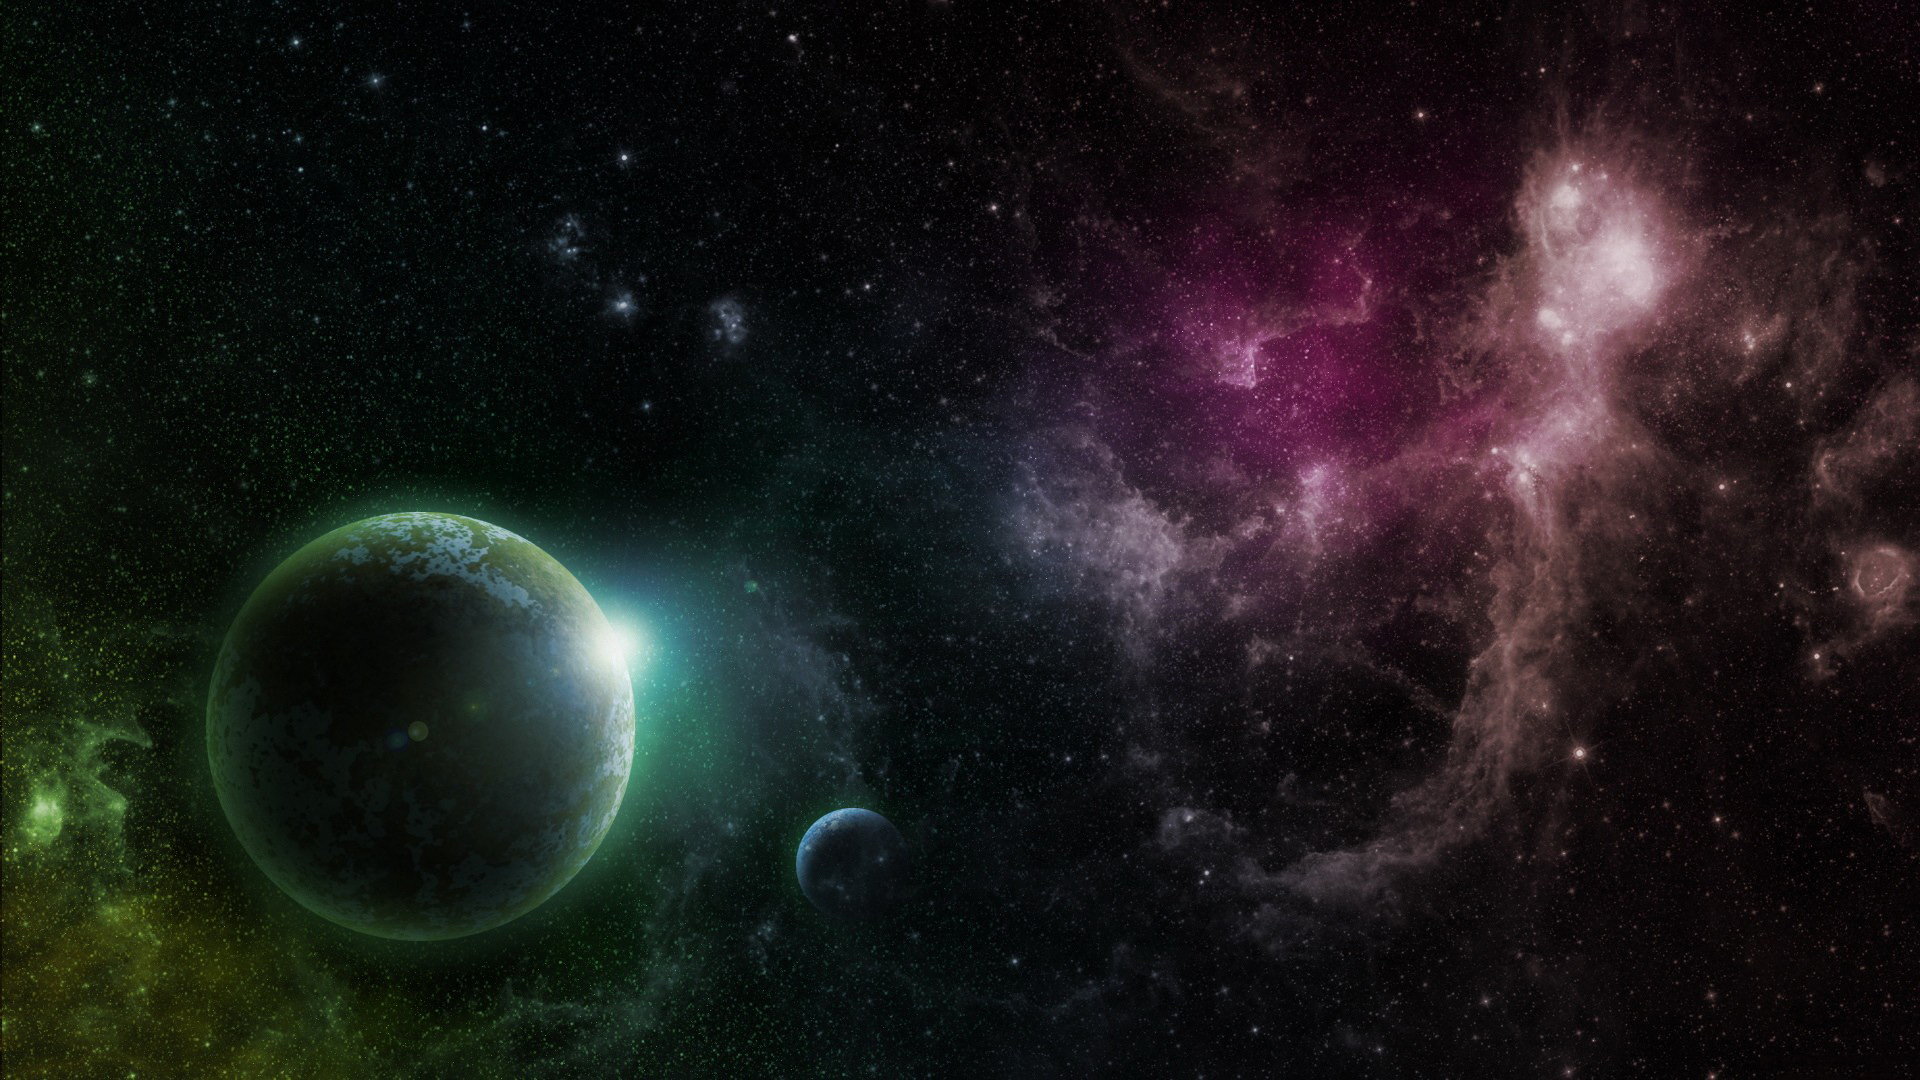 Space images Digital Planets wallpaper photos 28406917 1920x1080